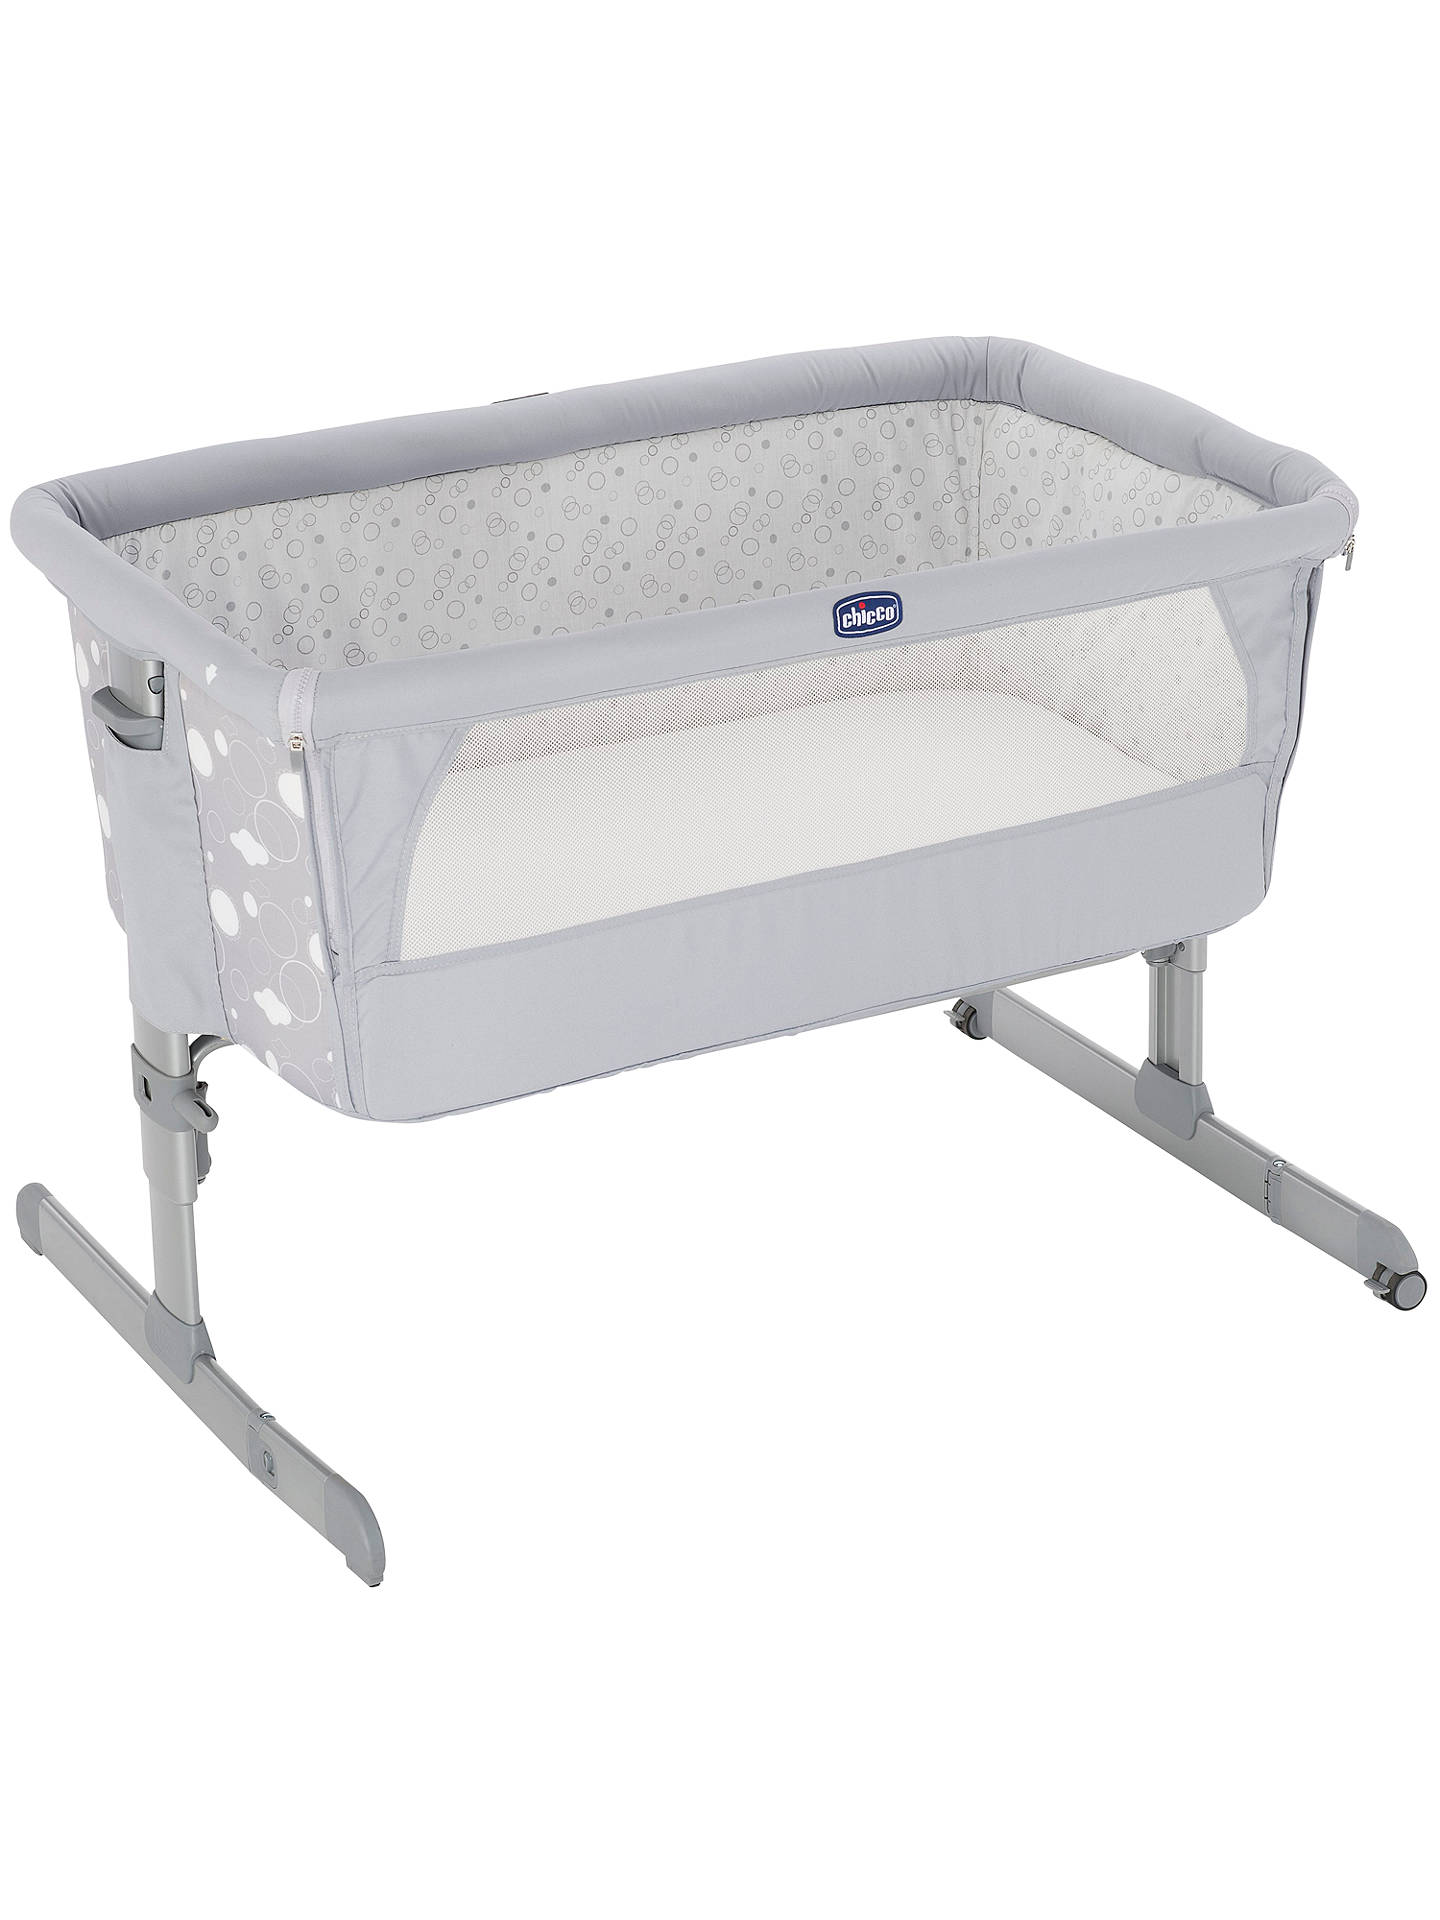 Chicco Next To Me Crib Circle Grey John Lewis Buy 2 Get 20 Baby Nail Scissors Pink Massage Oil Buychicco Online At